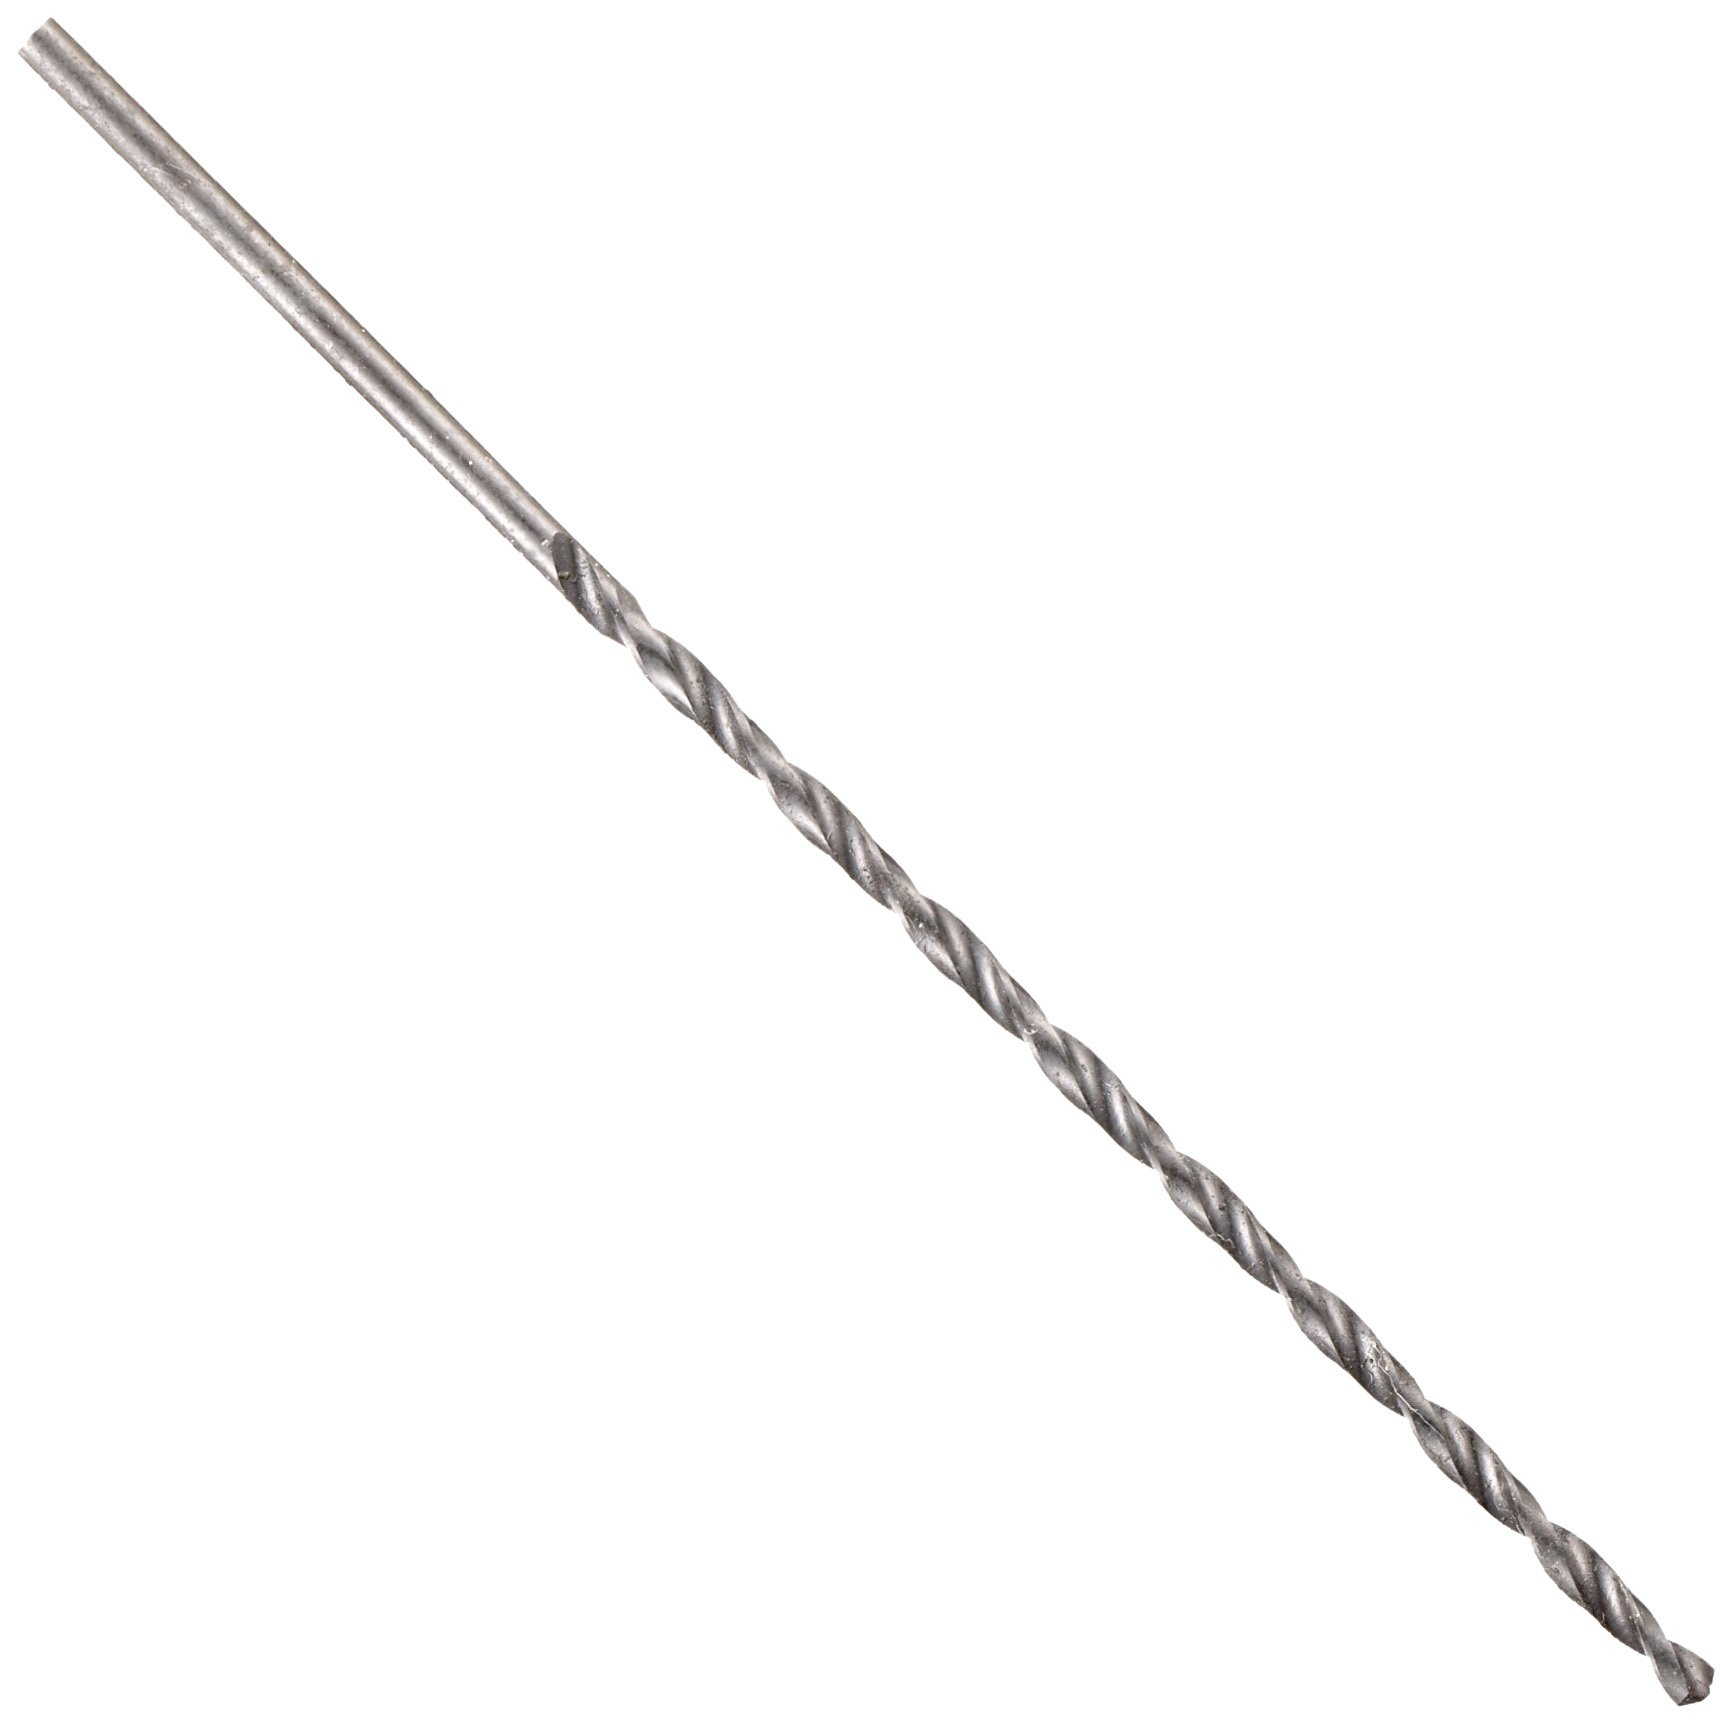 """Chicago Latrobe 255AN High-Speed Steel Long Length Drill Bit, Black Oxide Finish, Round Shank with Tang, 118 Degree Conventional Point, 43/64"""" Size (Pack of 1)"""